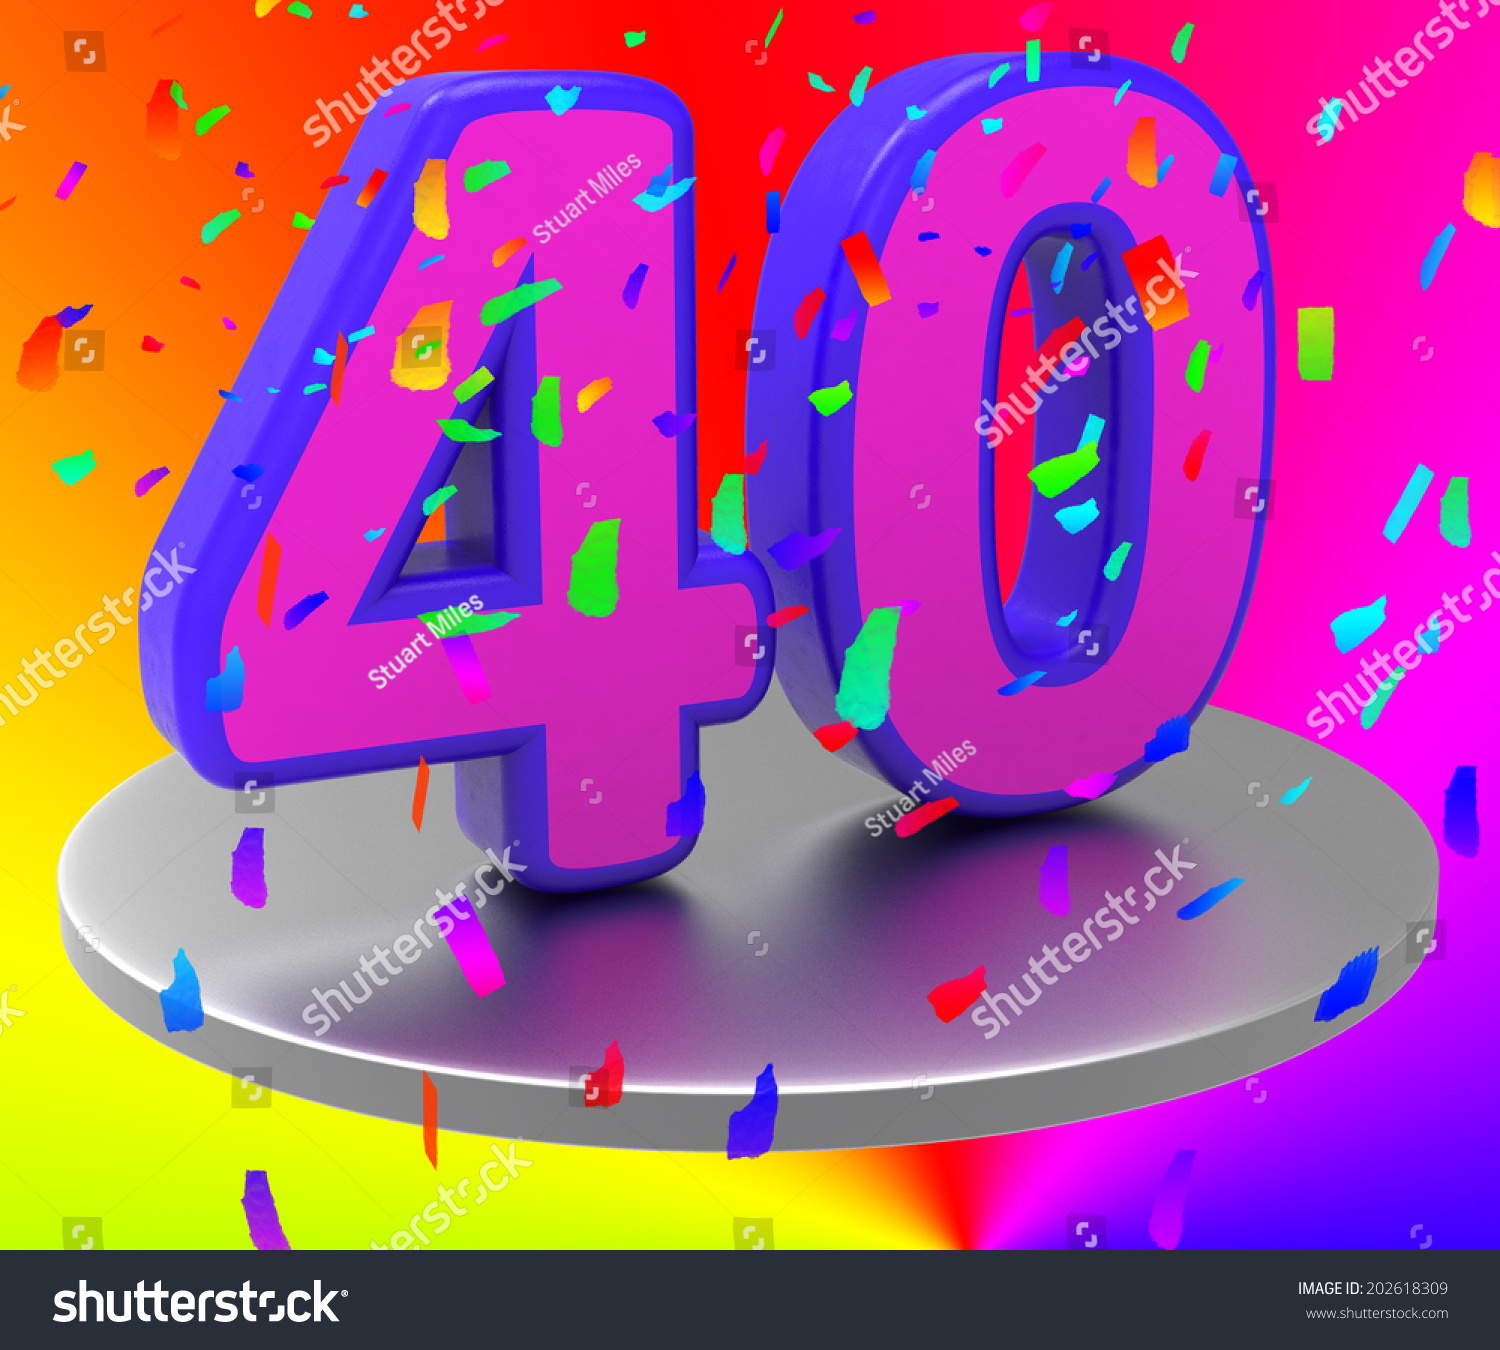 Forty birthday meaning happy anniversary marriage stock forty birthday meaning happy anniversary and marriage buycottarizona